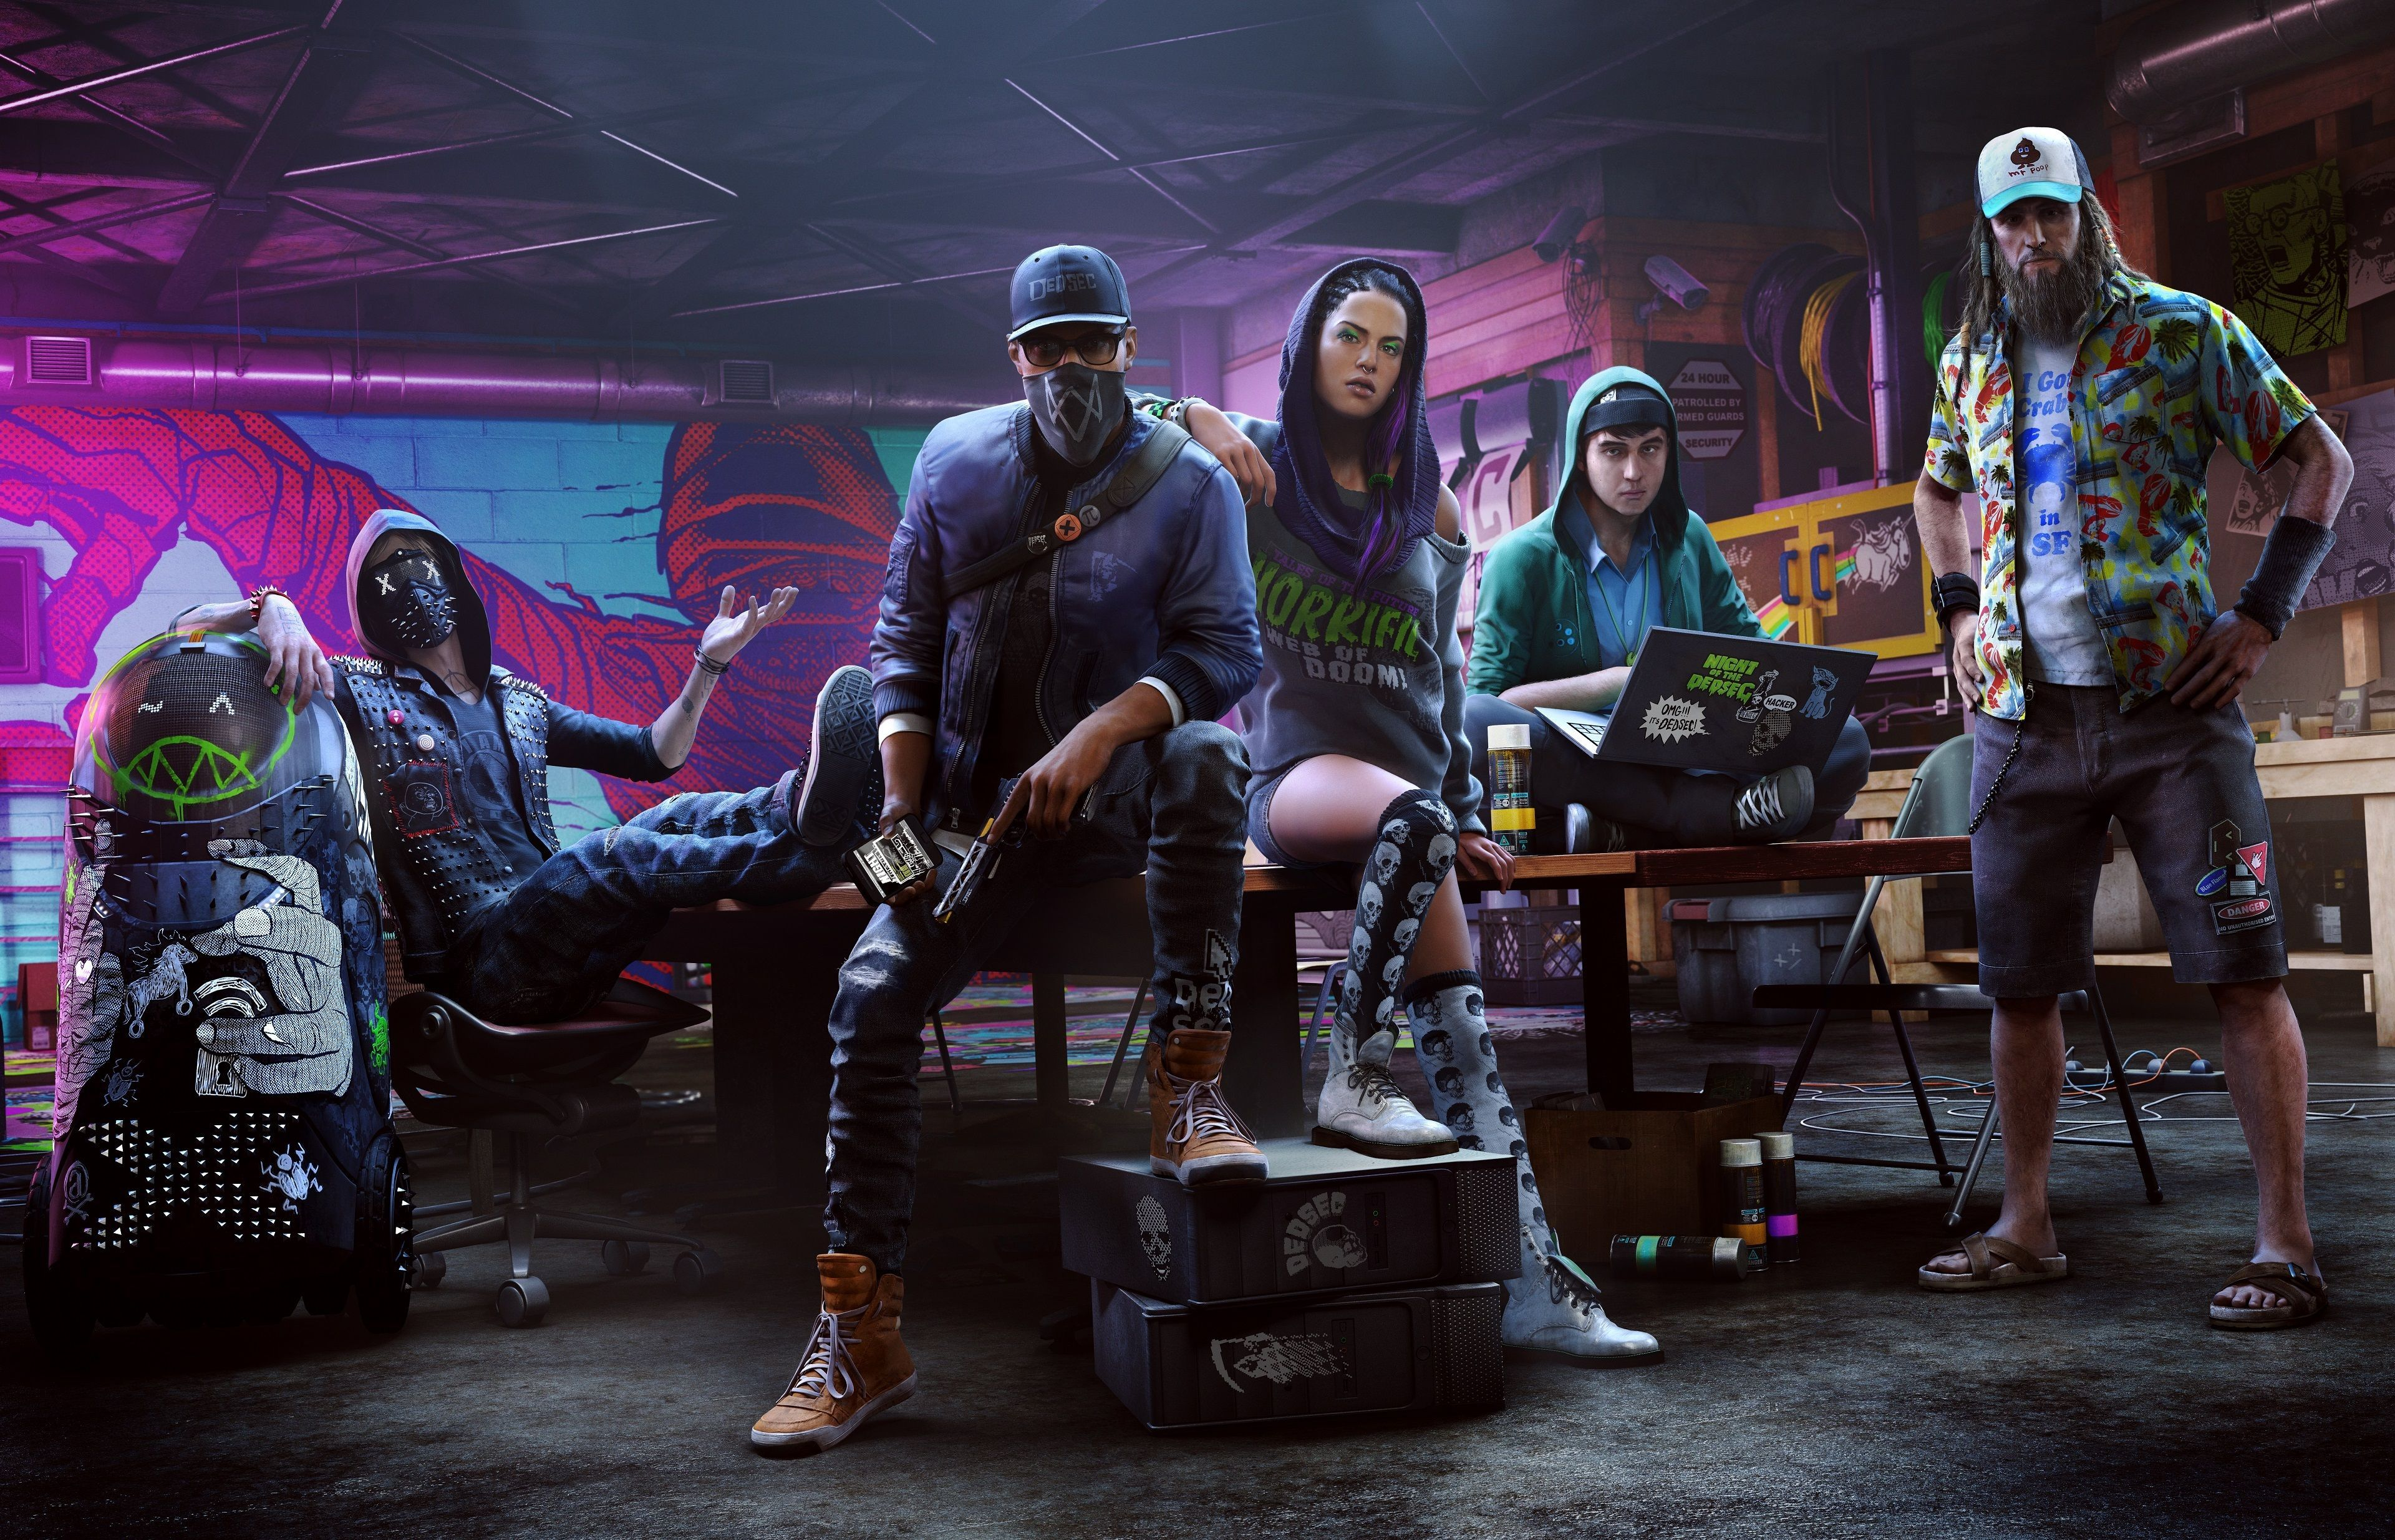 2048x2048 Watch Dogs 2 4k Game Ipad Air Hd 4k Wallpapers